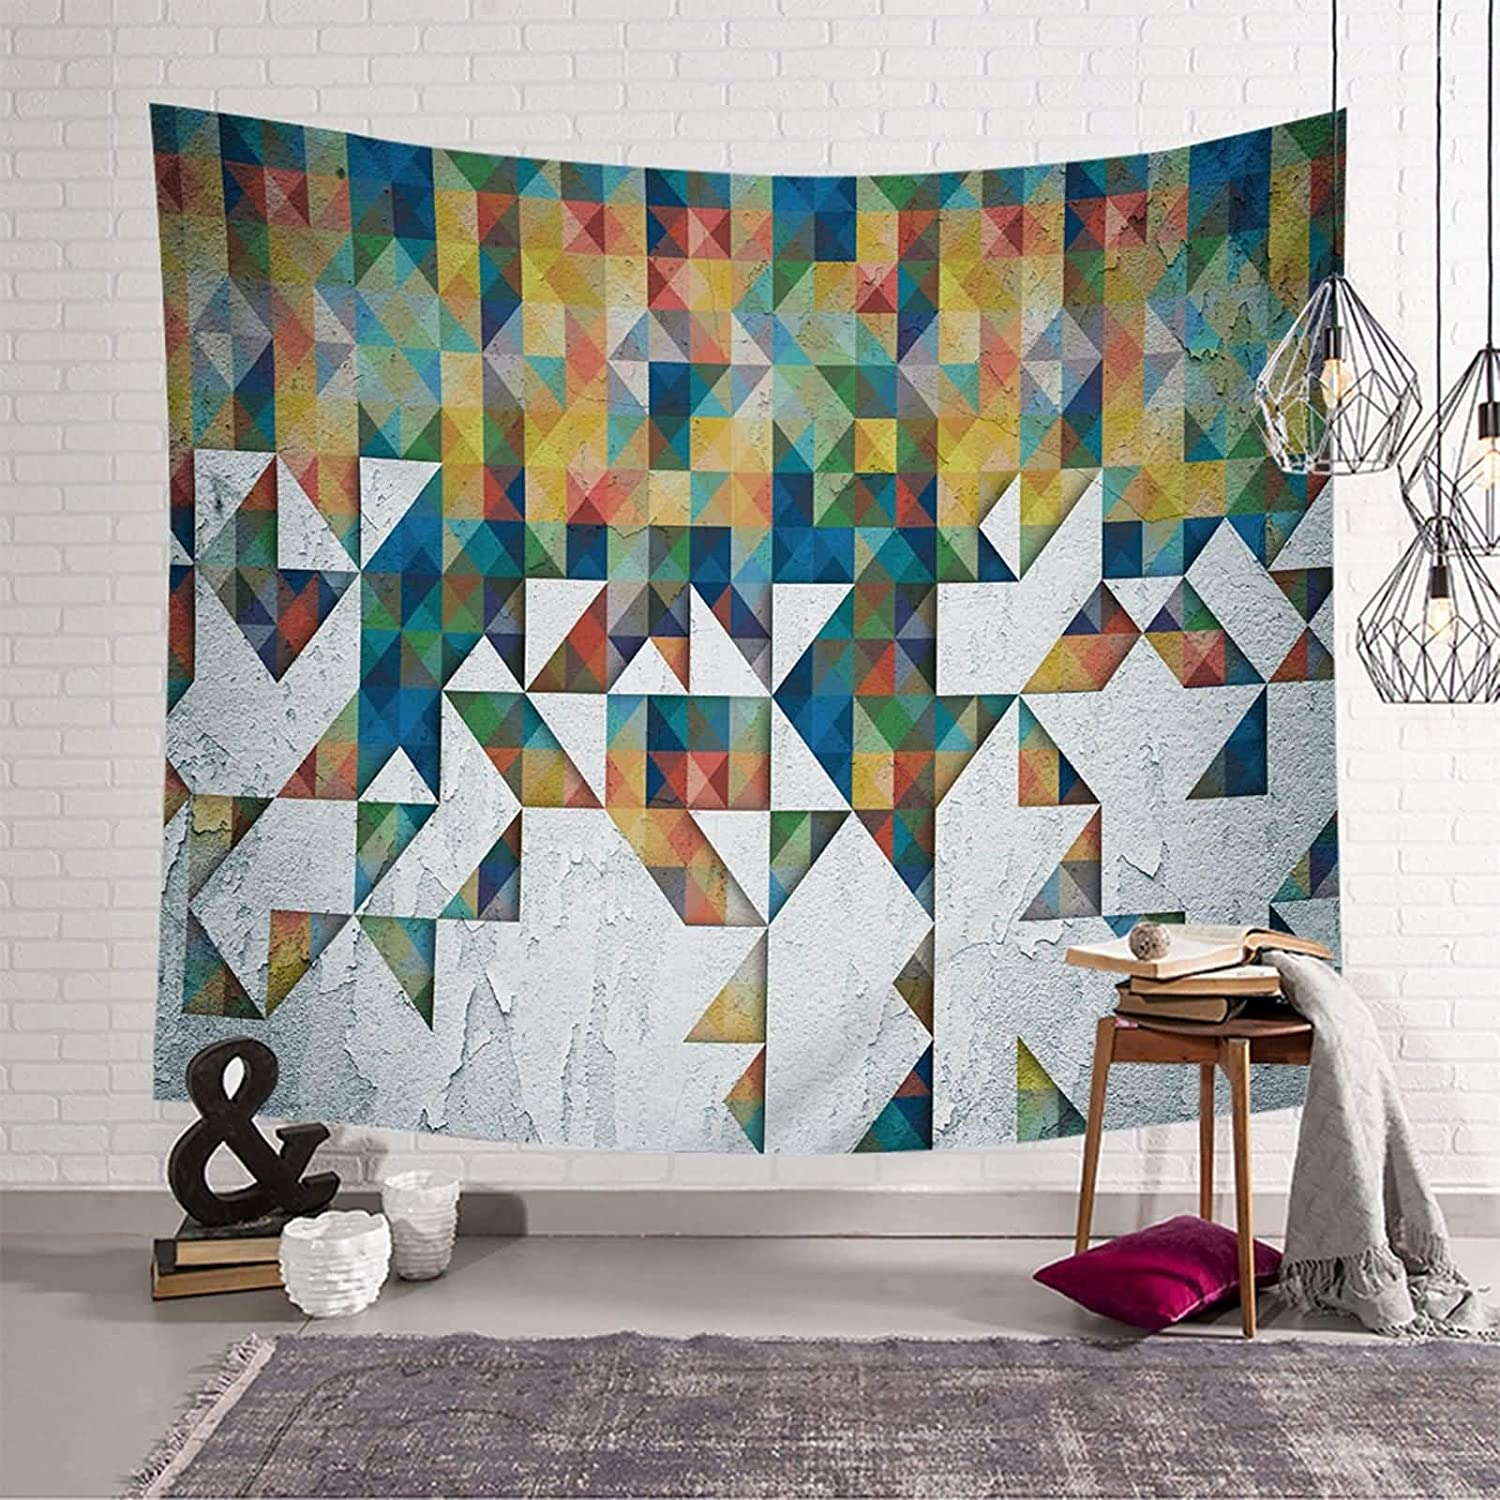 Gnzoe Dorm Tapestry Manufacturer direct delivery Decor Seasonal Wrap Introduction Polyester Colorful Fig Geometric Color